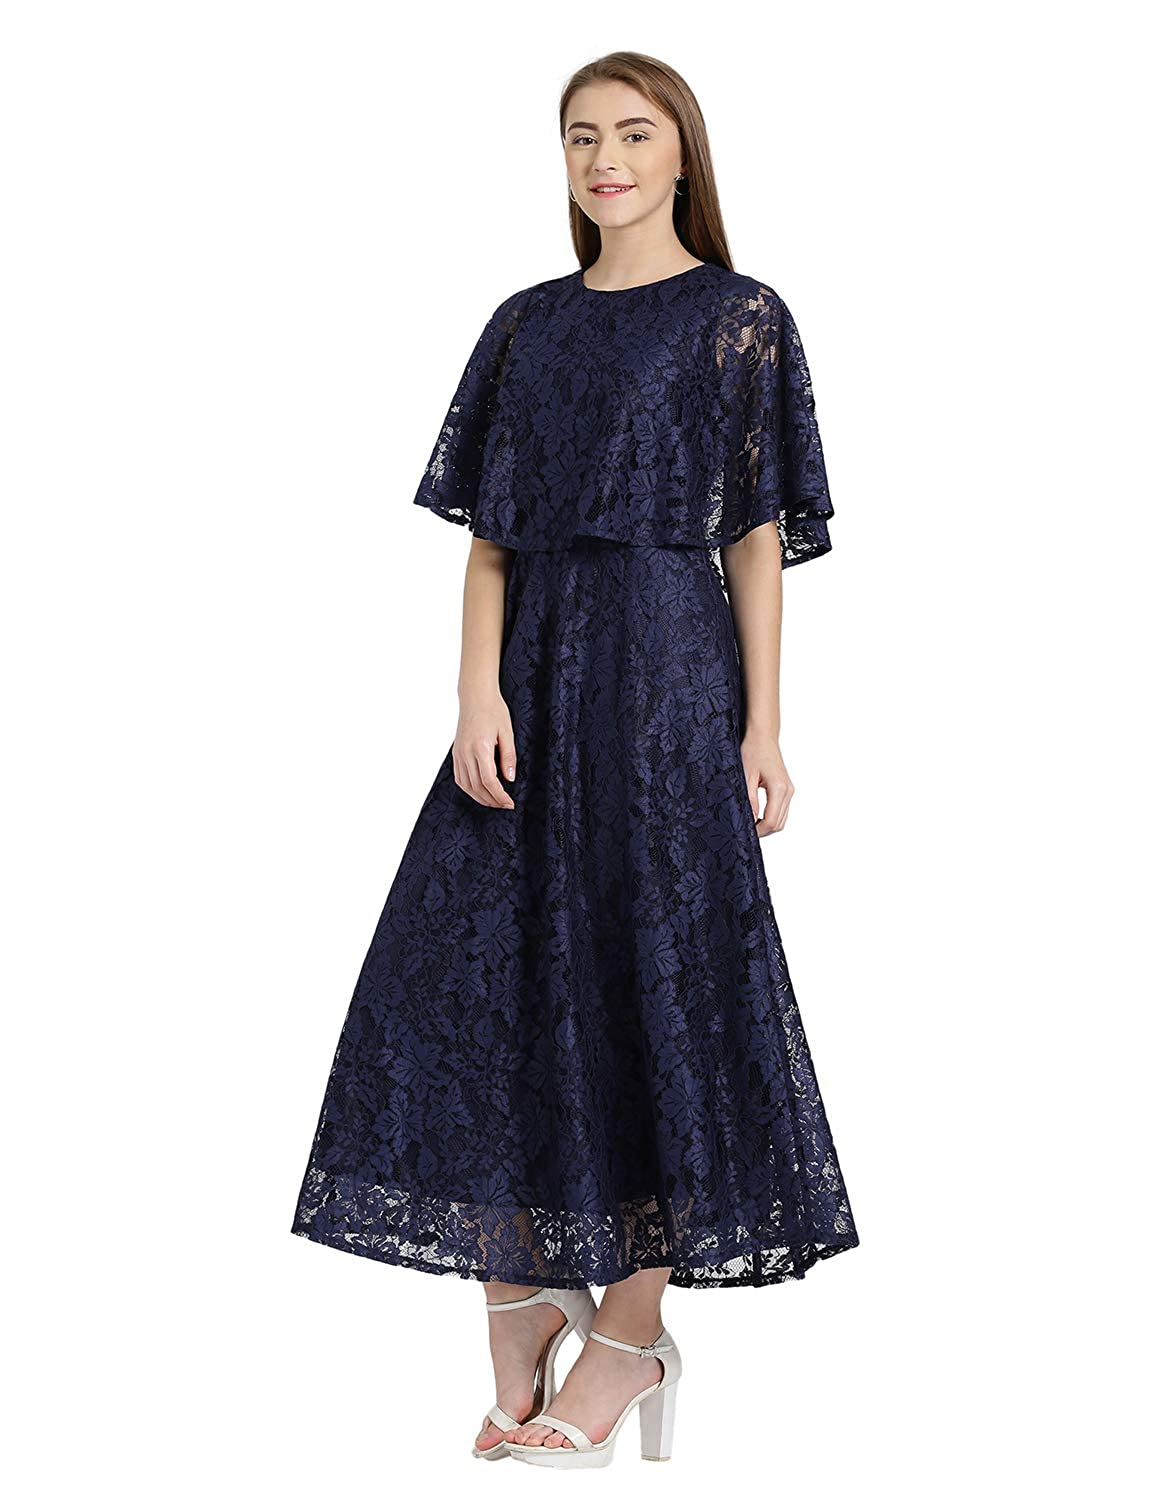 c11984fb5a Zink London Navy Cape Style Maxi Dress for Women (Small)  Amazon.in   Clothing   Accessories